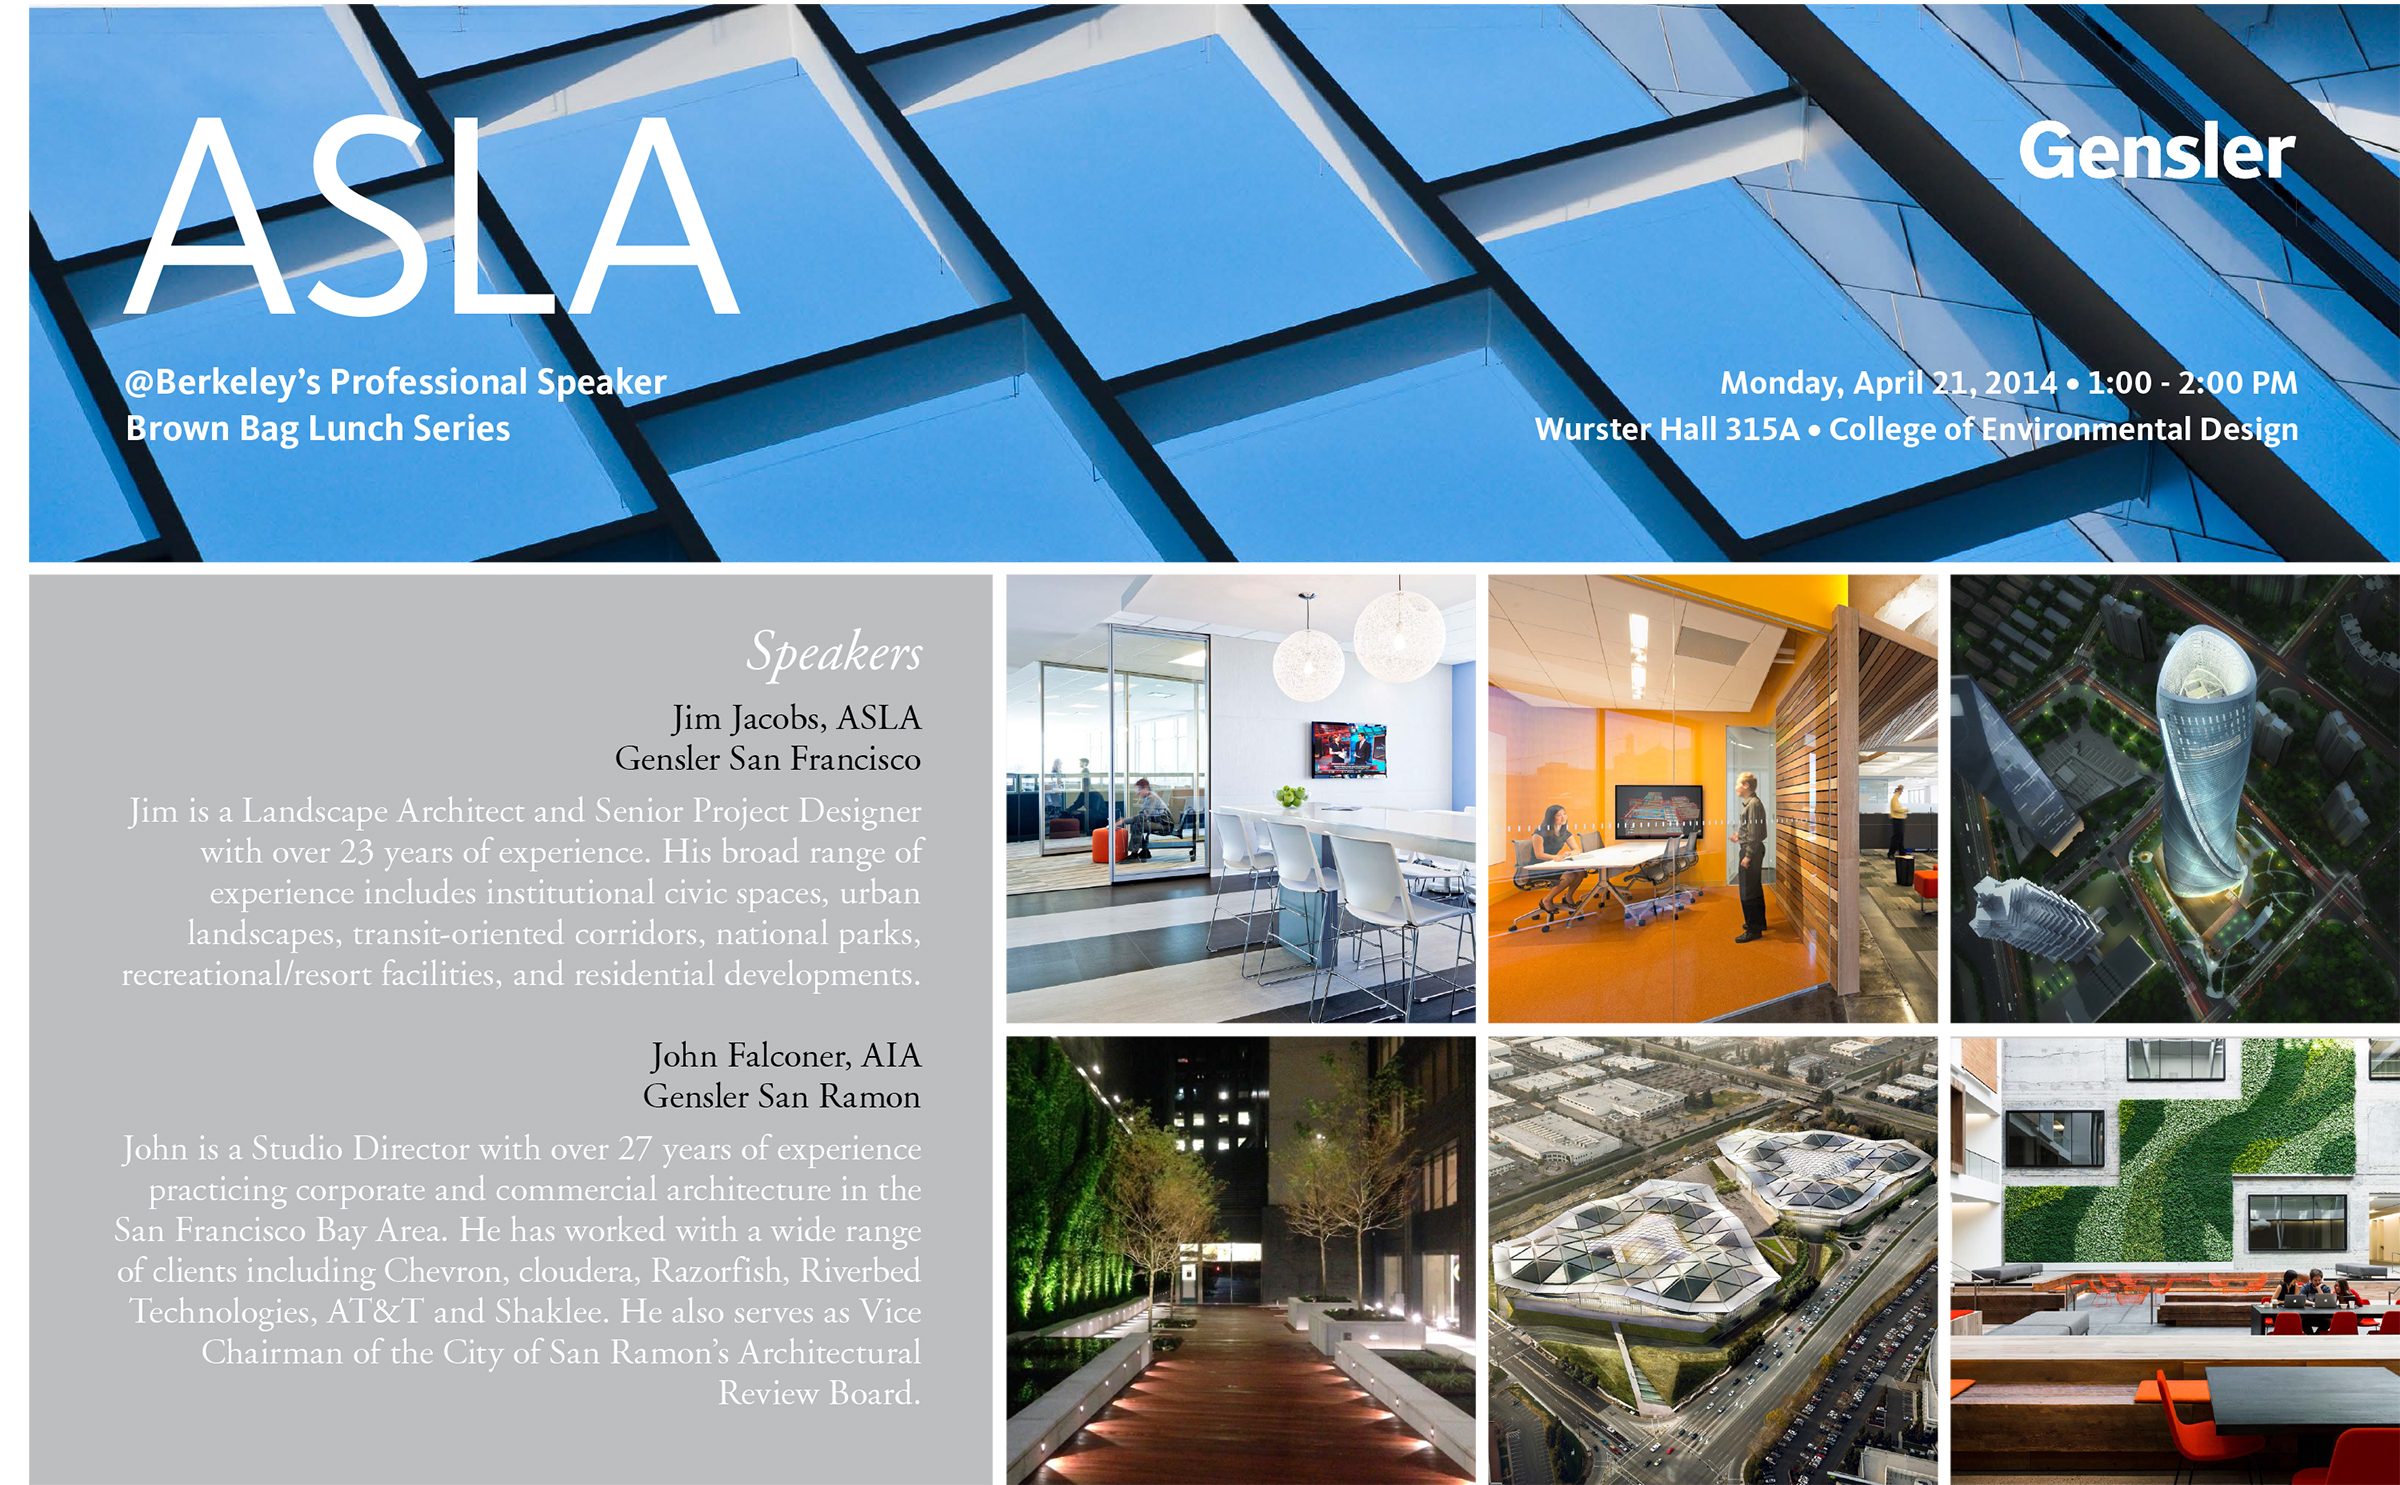 ASLA@Berkeley Speaker Series Presents Gensler | Mon, April 21st | 1PM